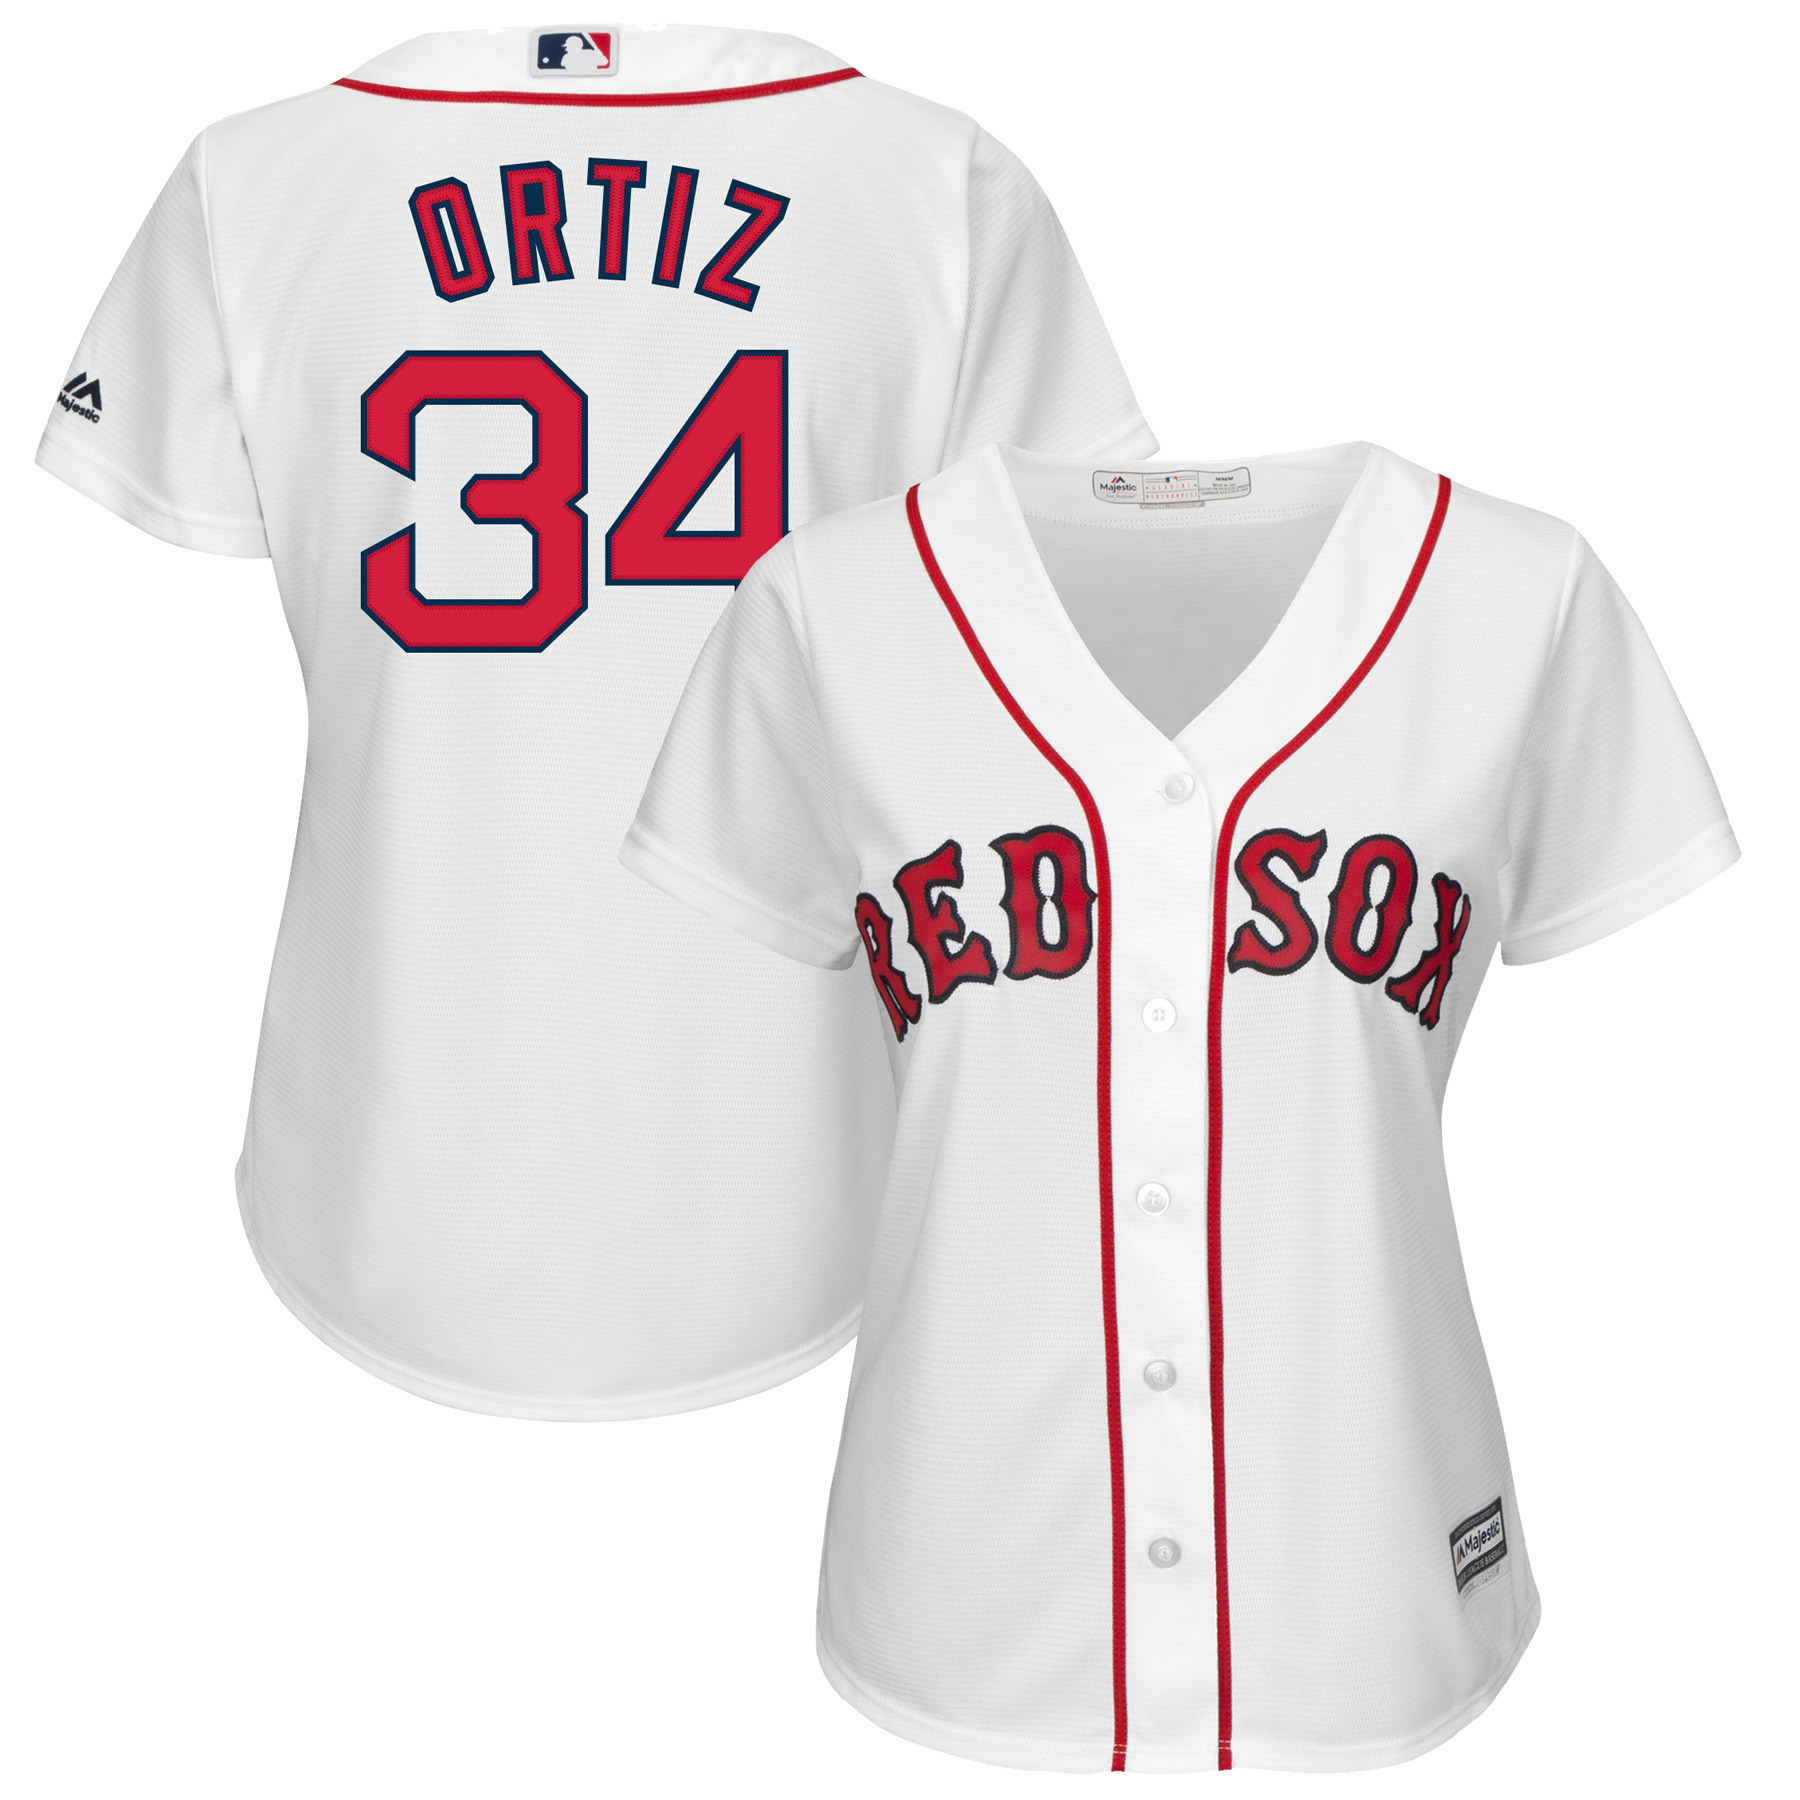 David Ortiz Boston Red Sox Majestic Women's Cool Base Player Jersey White by MAJESTIC LSG